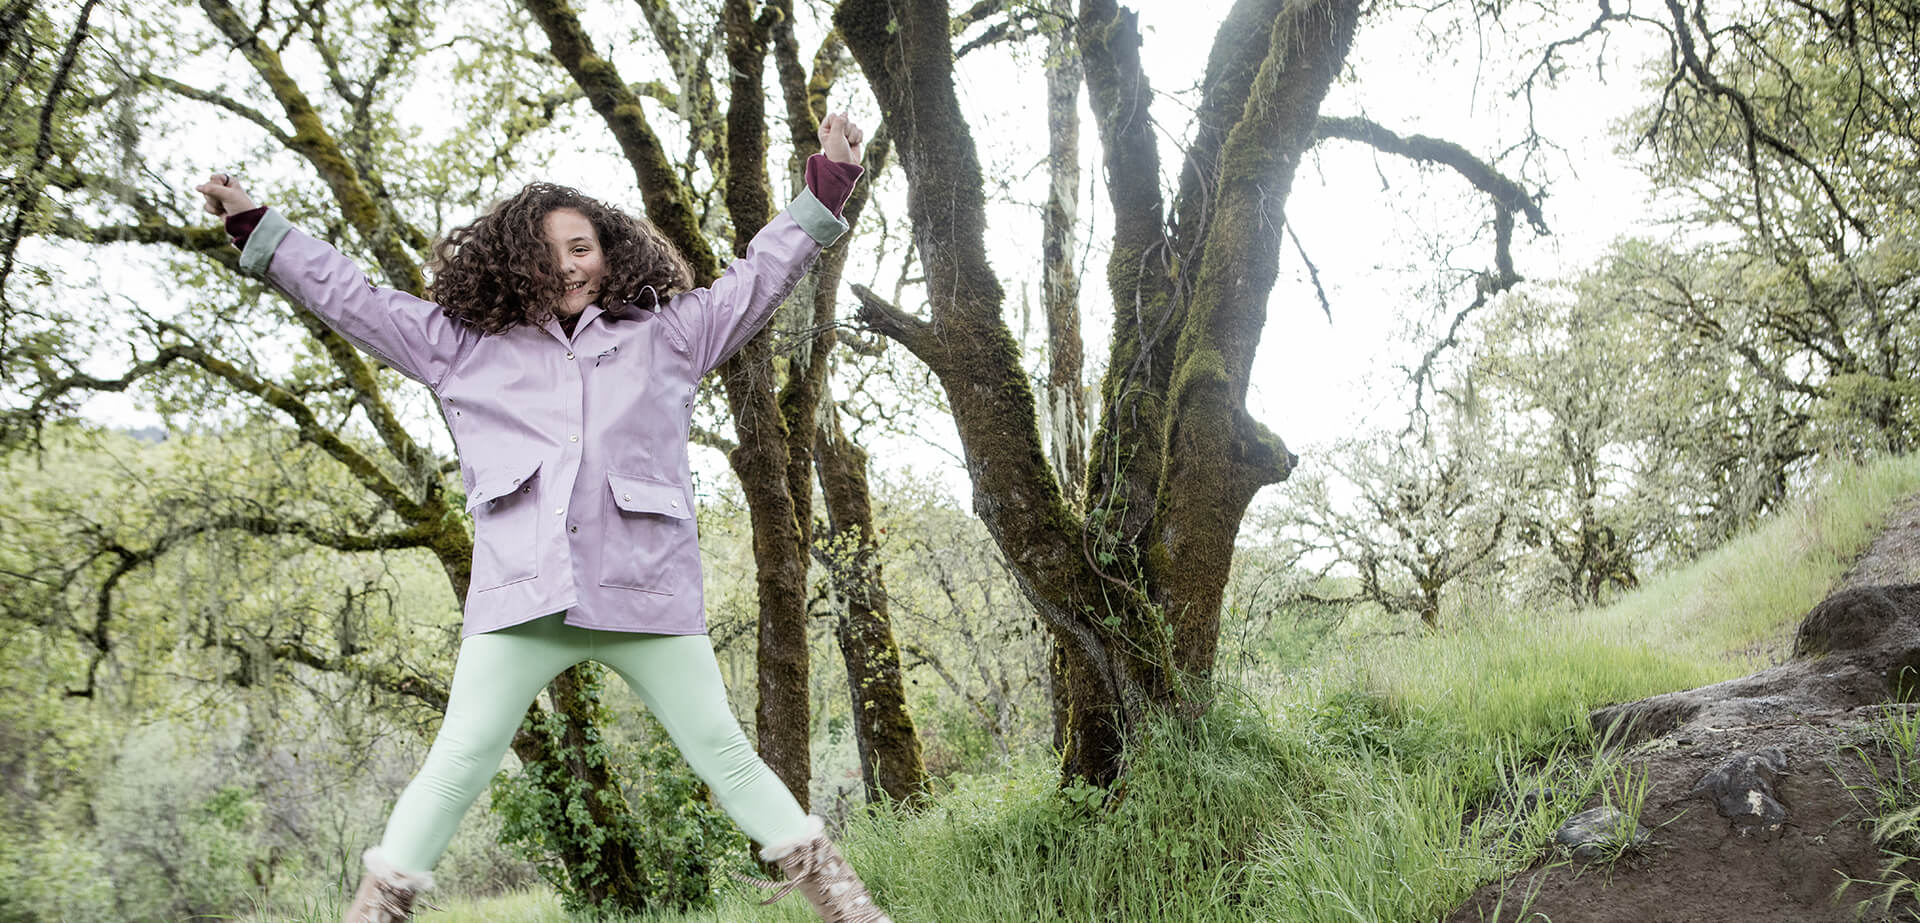 young curly haired brunette happily jumping in the air outdoors in a purple coat